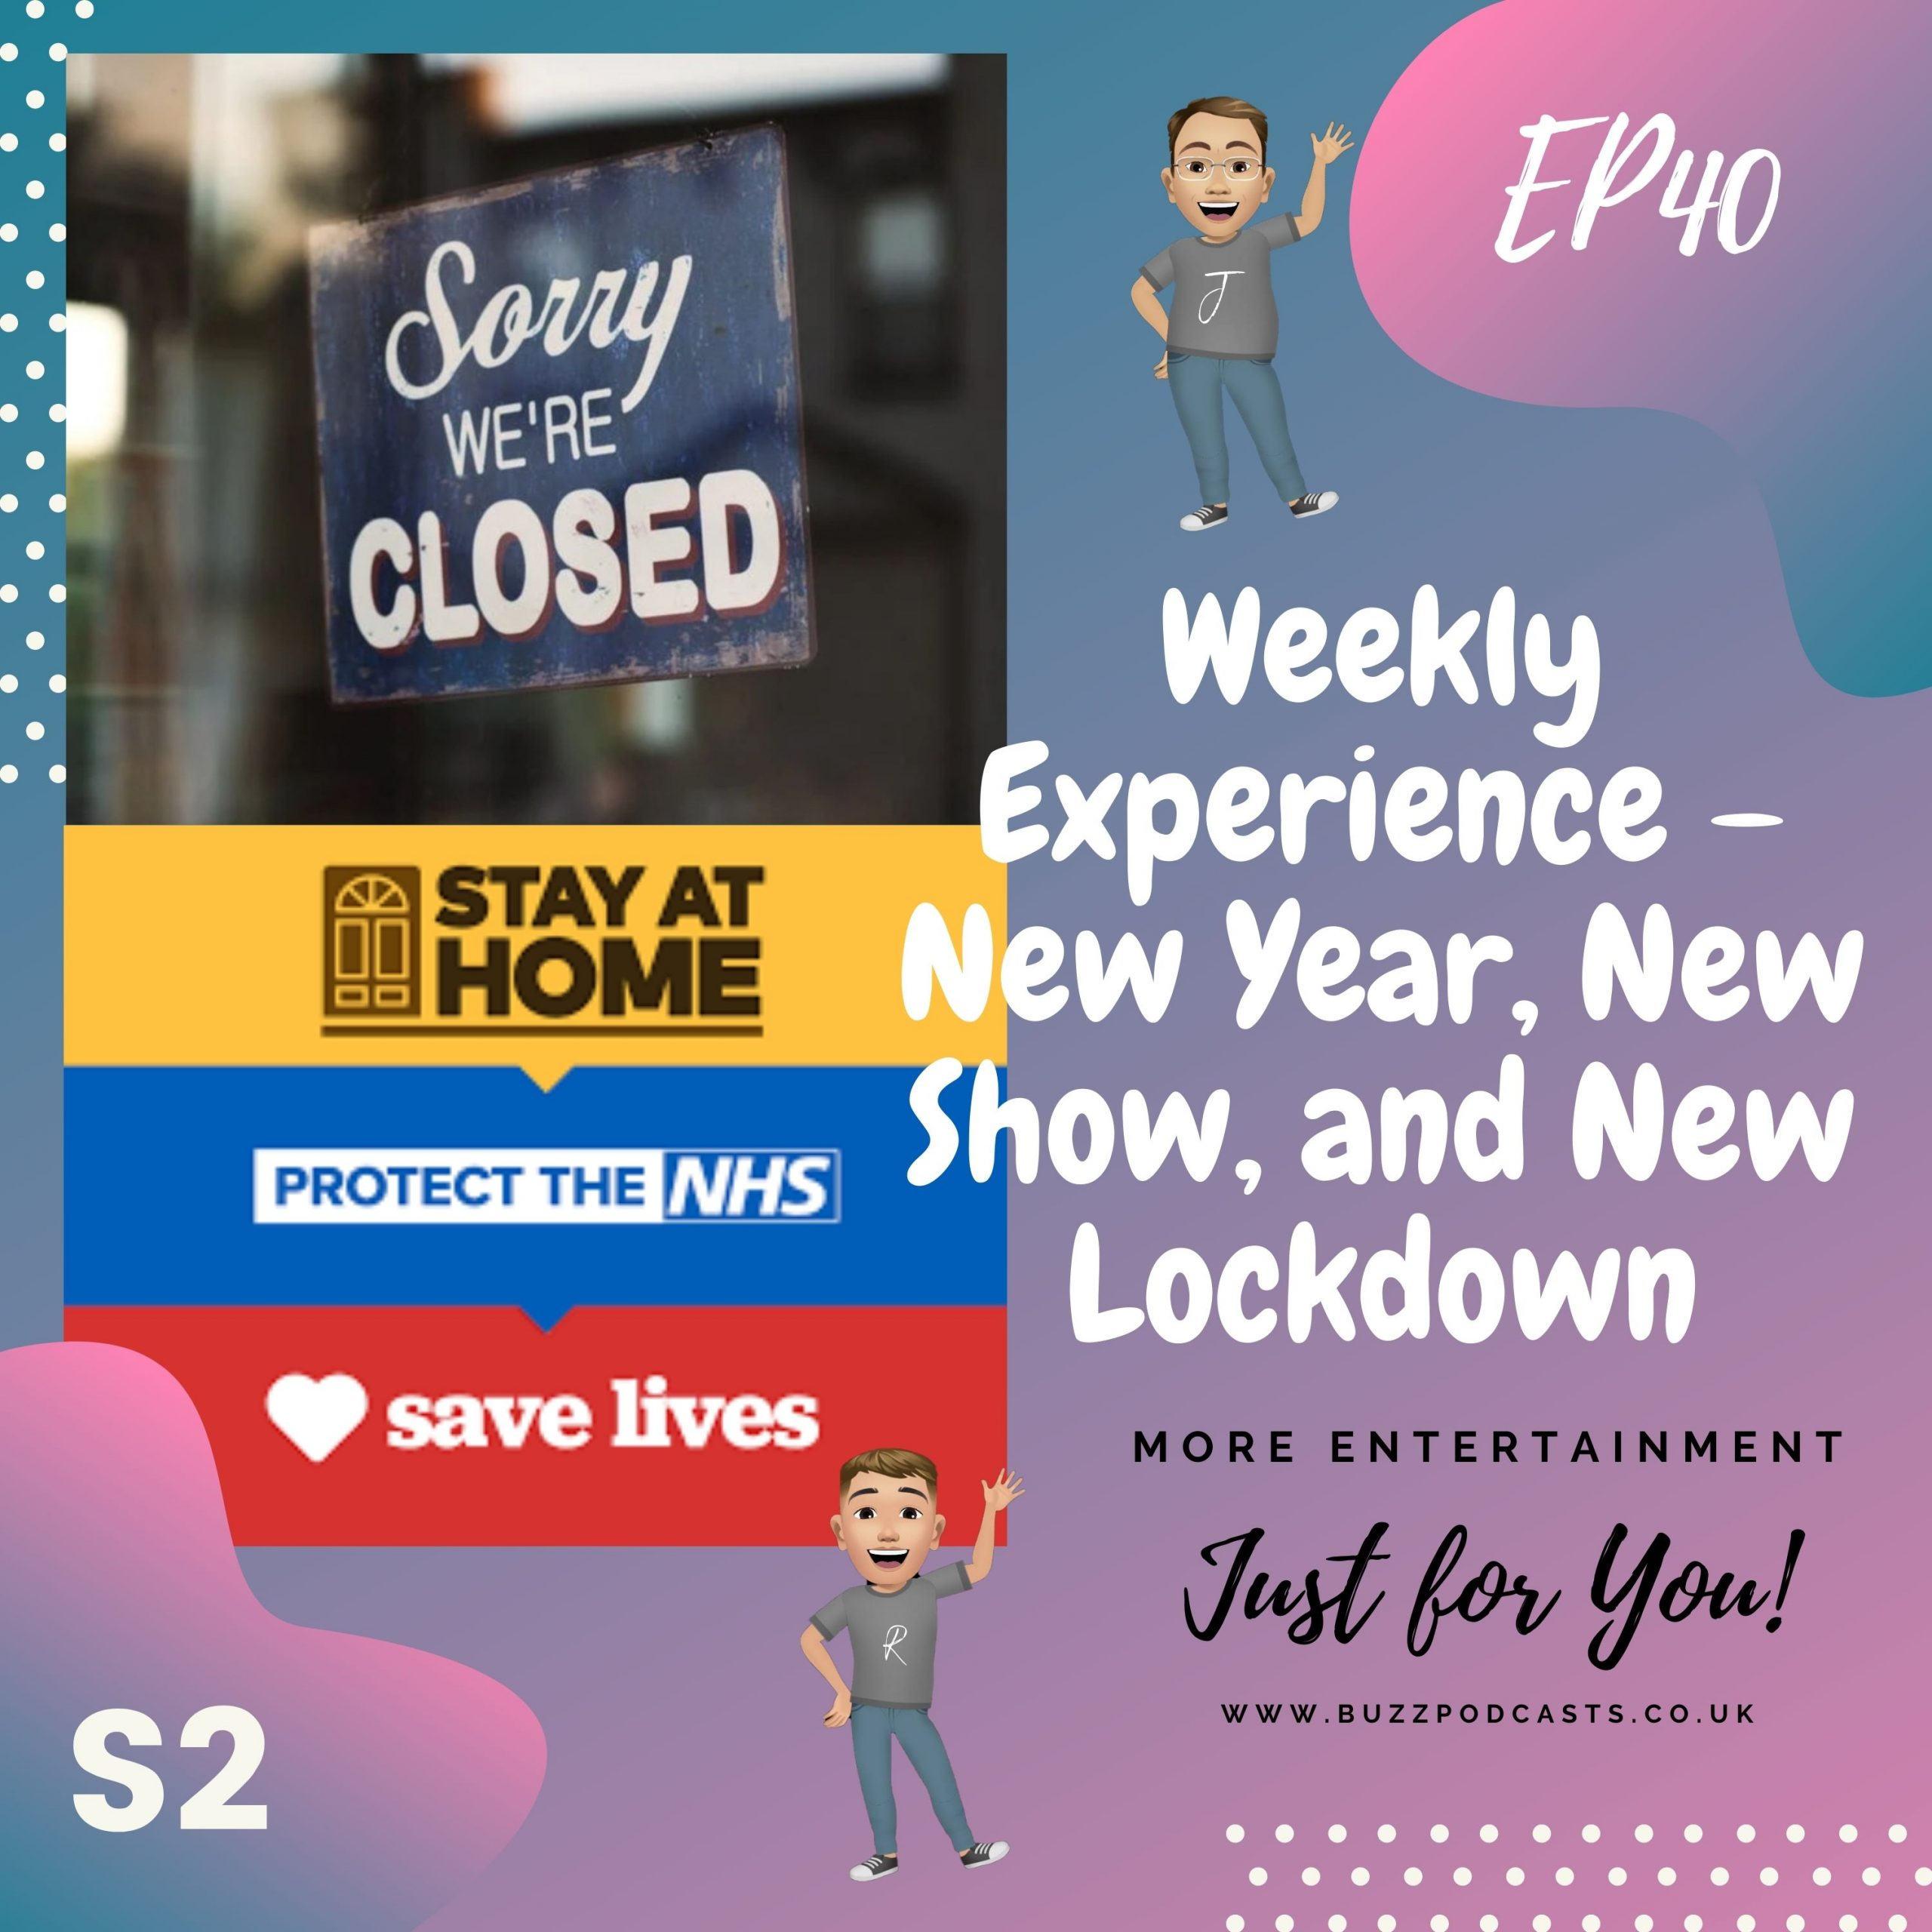 Weekly Experience – New Year, New Show, and New Lockdown